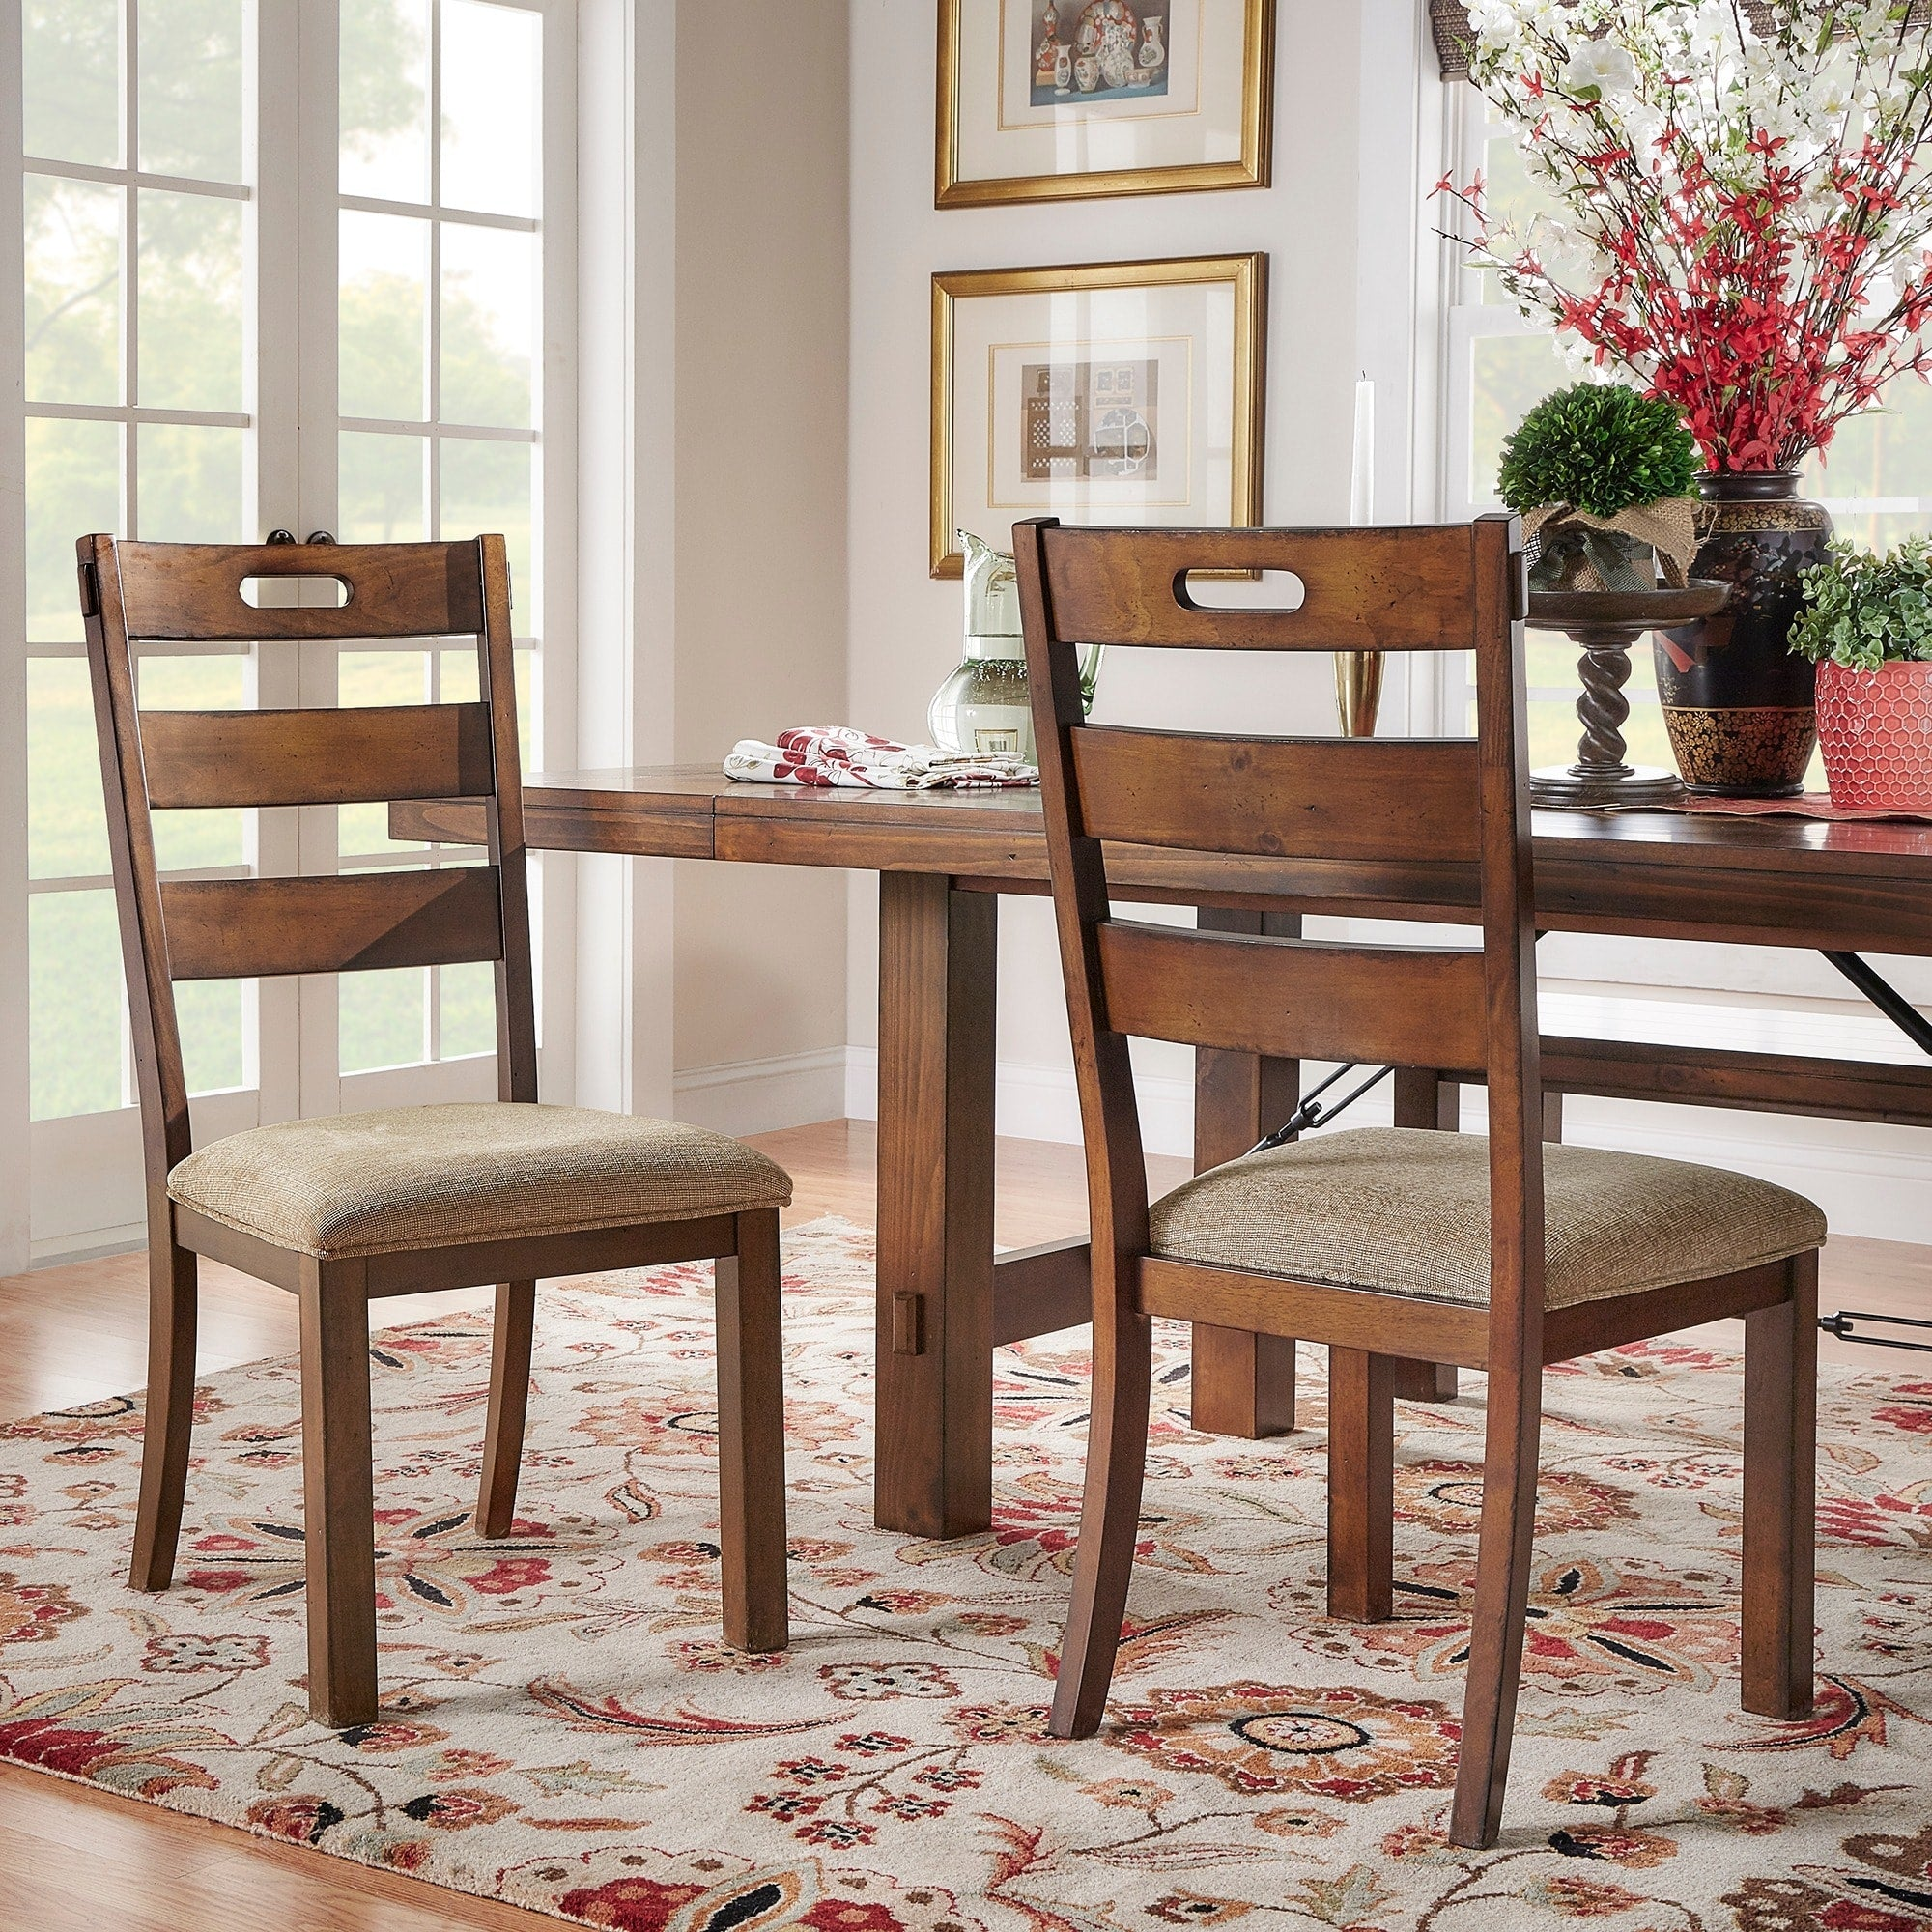 Rustic Oak Classic Dining Chair